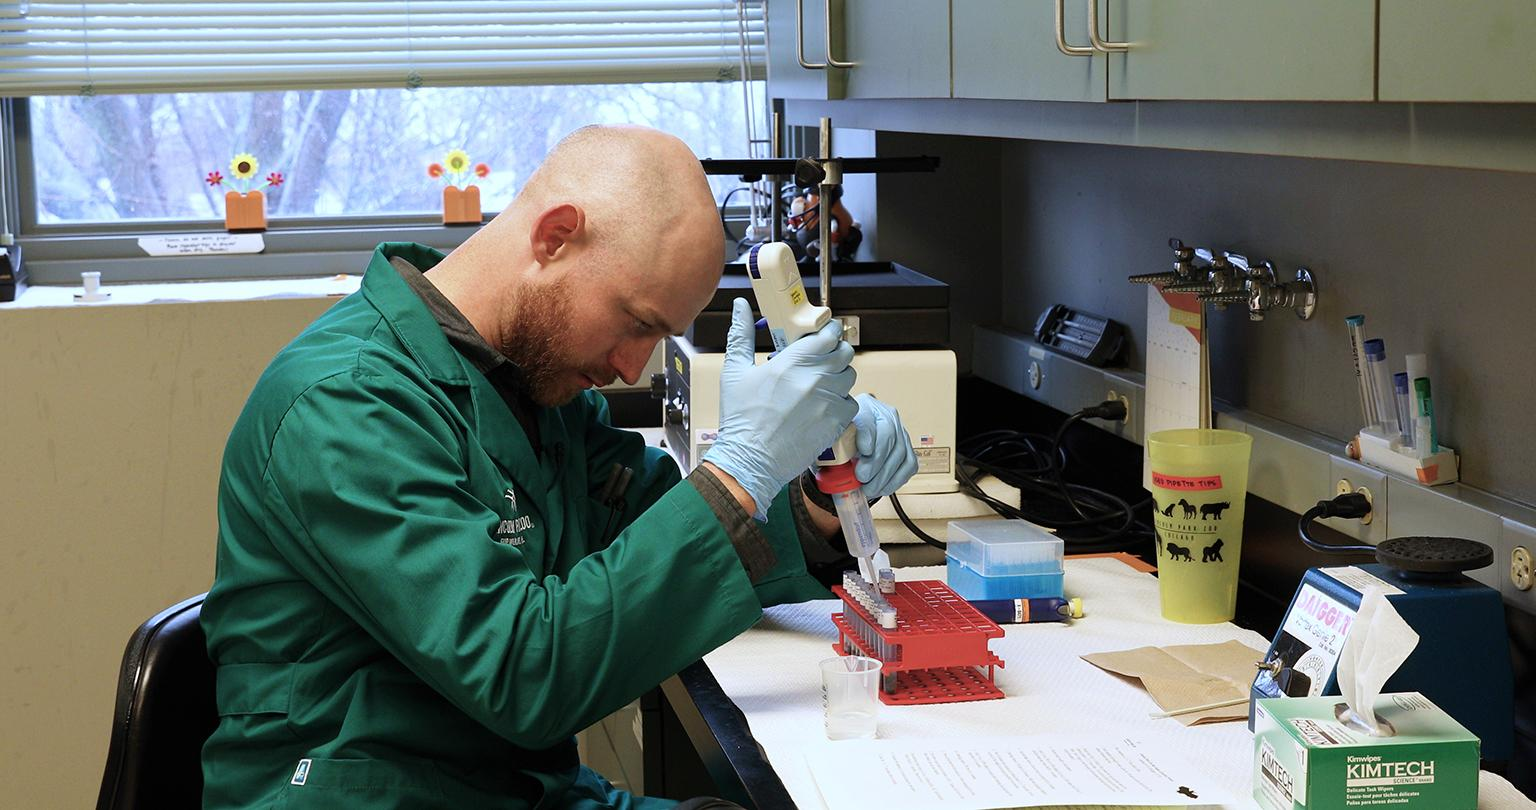 Matt Mulligan, a wildlife research coordinator at Lincoln Park Zoo, tests samples of bat guano to measure for levels of cortisol, an indicator of stress. (Courtesy Lincoln Park Zoo)